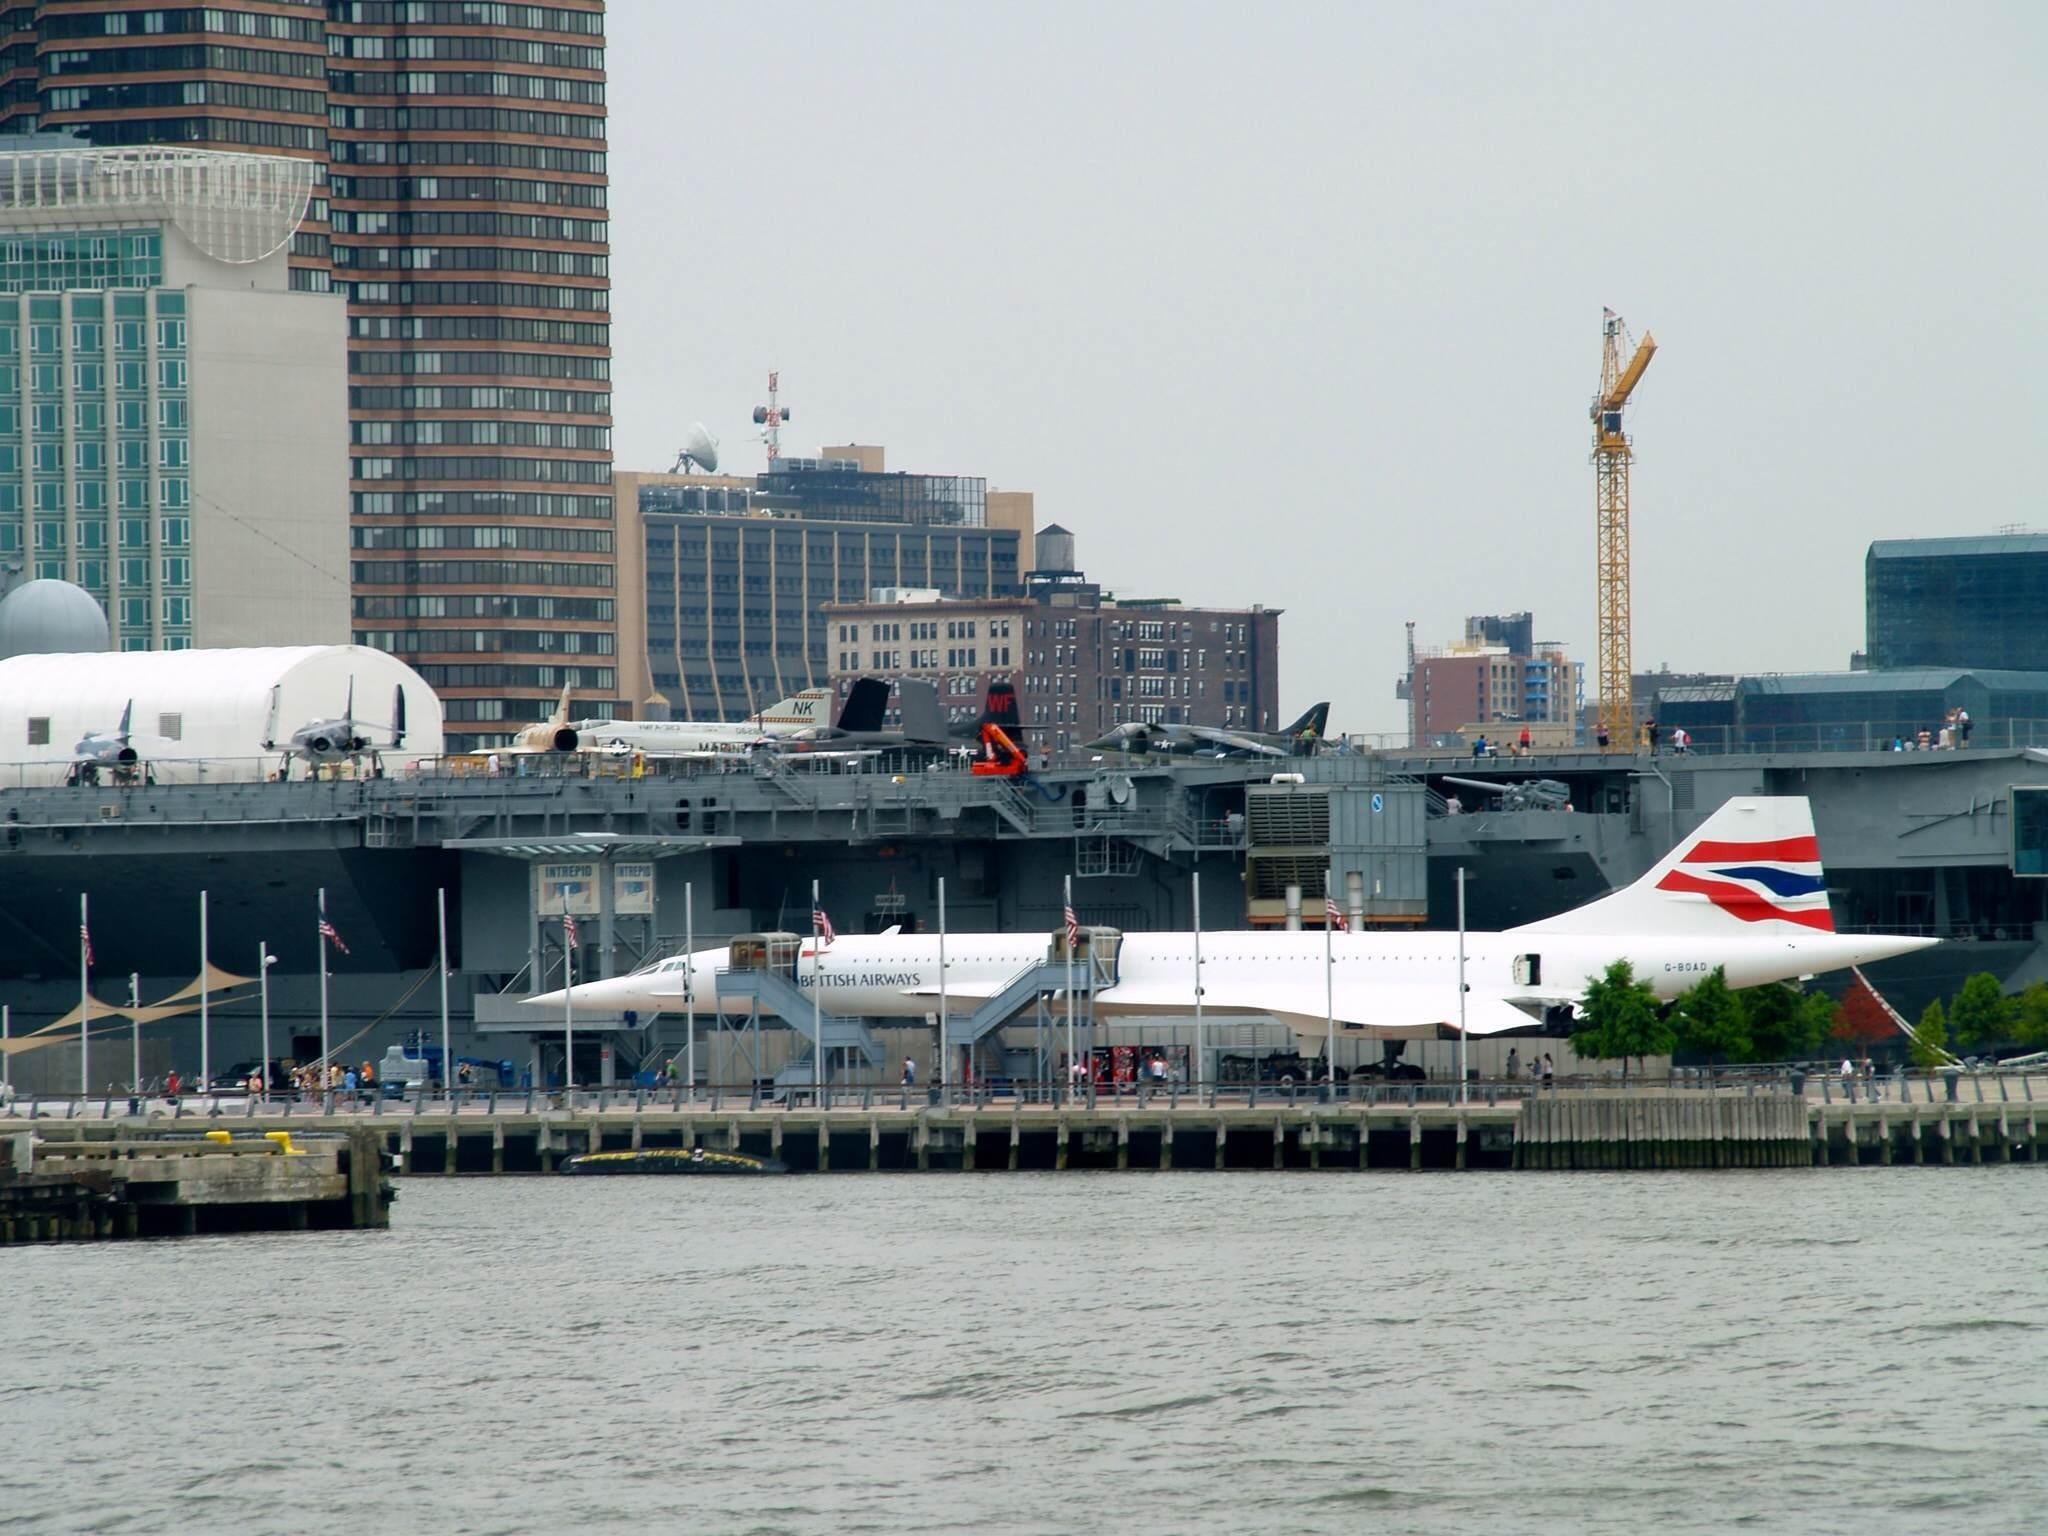 Mar en USS Intrepid